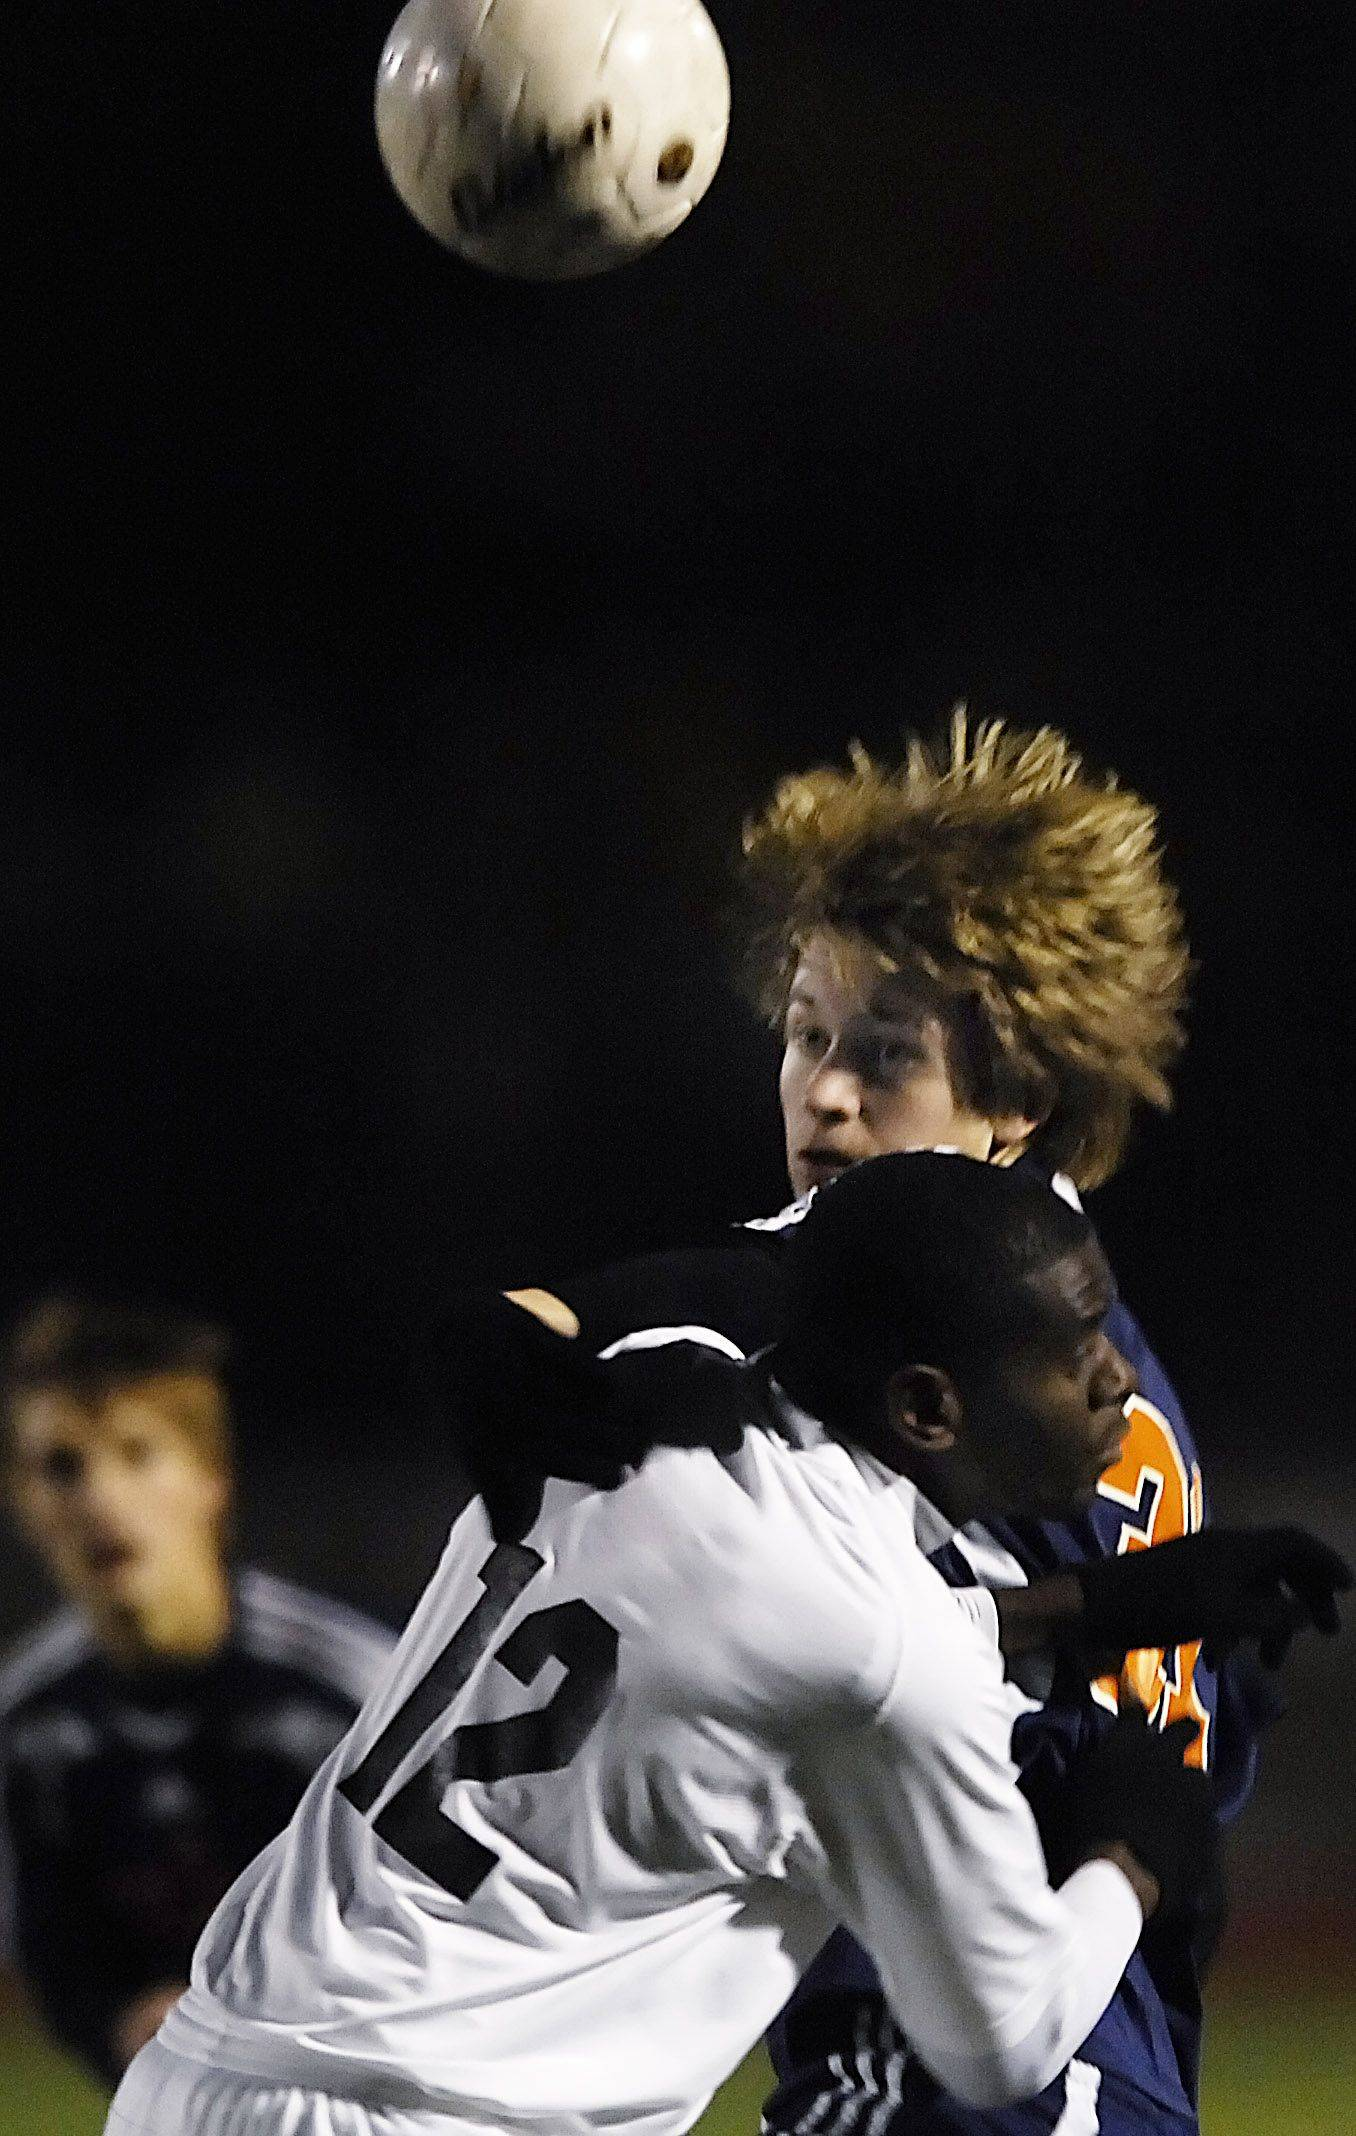 Naperville North's Kyle Lindberg and Edwardsville's Peter Renken compete for a header in the state tournament in Naperville Saturday.